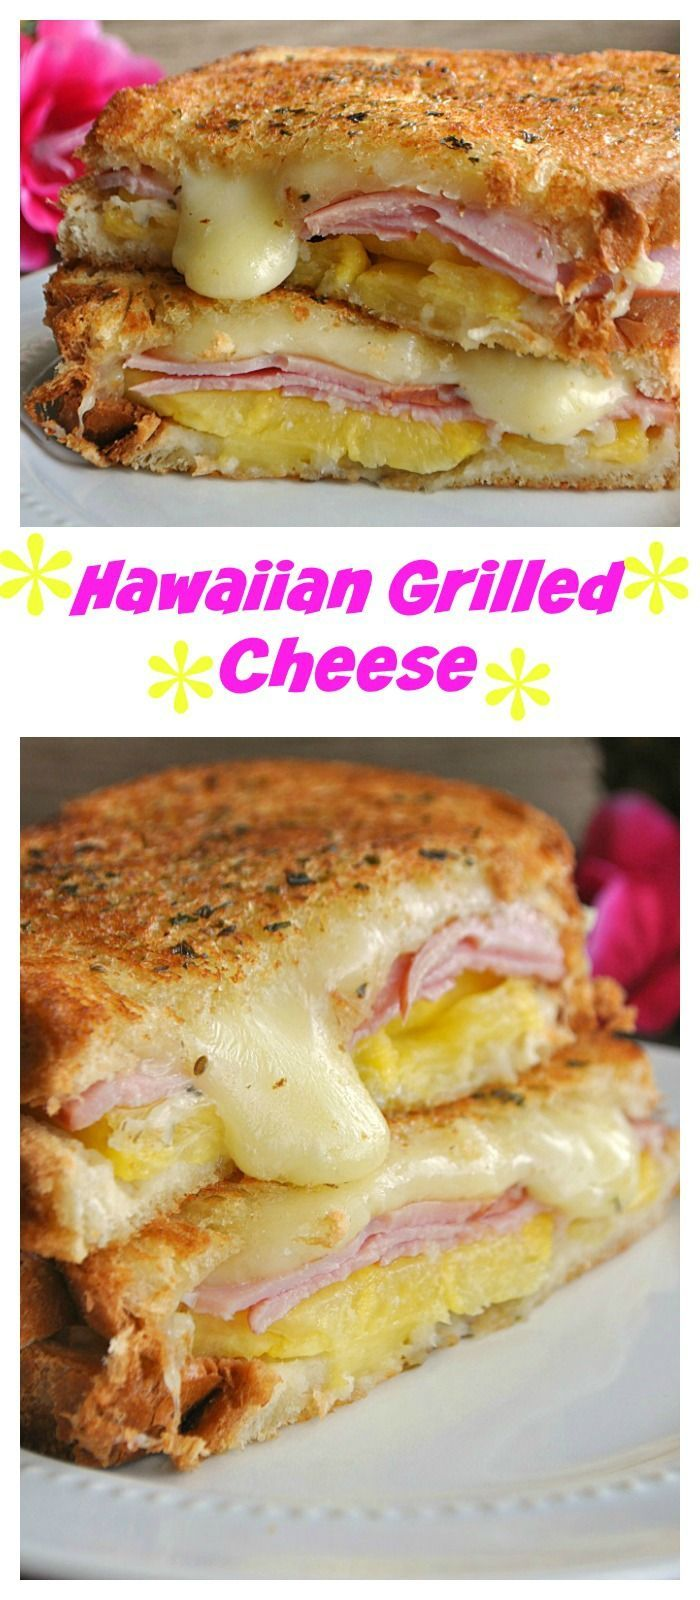 A tropical vacation for your tastebuds! Hawaiian Grilled Cheese = A grilled cheese take on the popular Hawaiian style pizza!